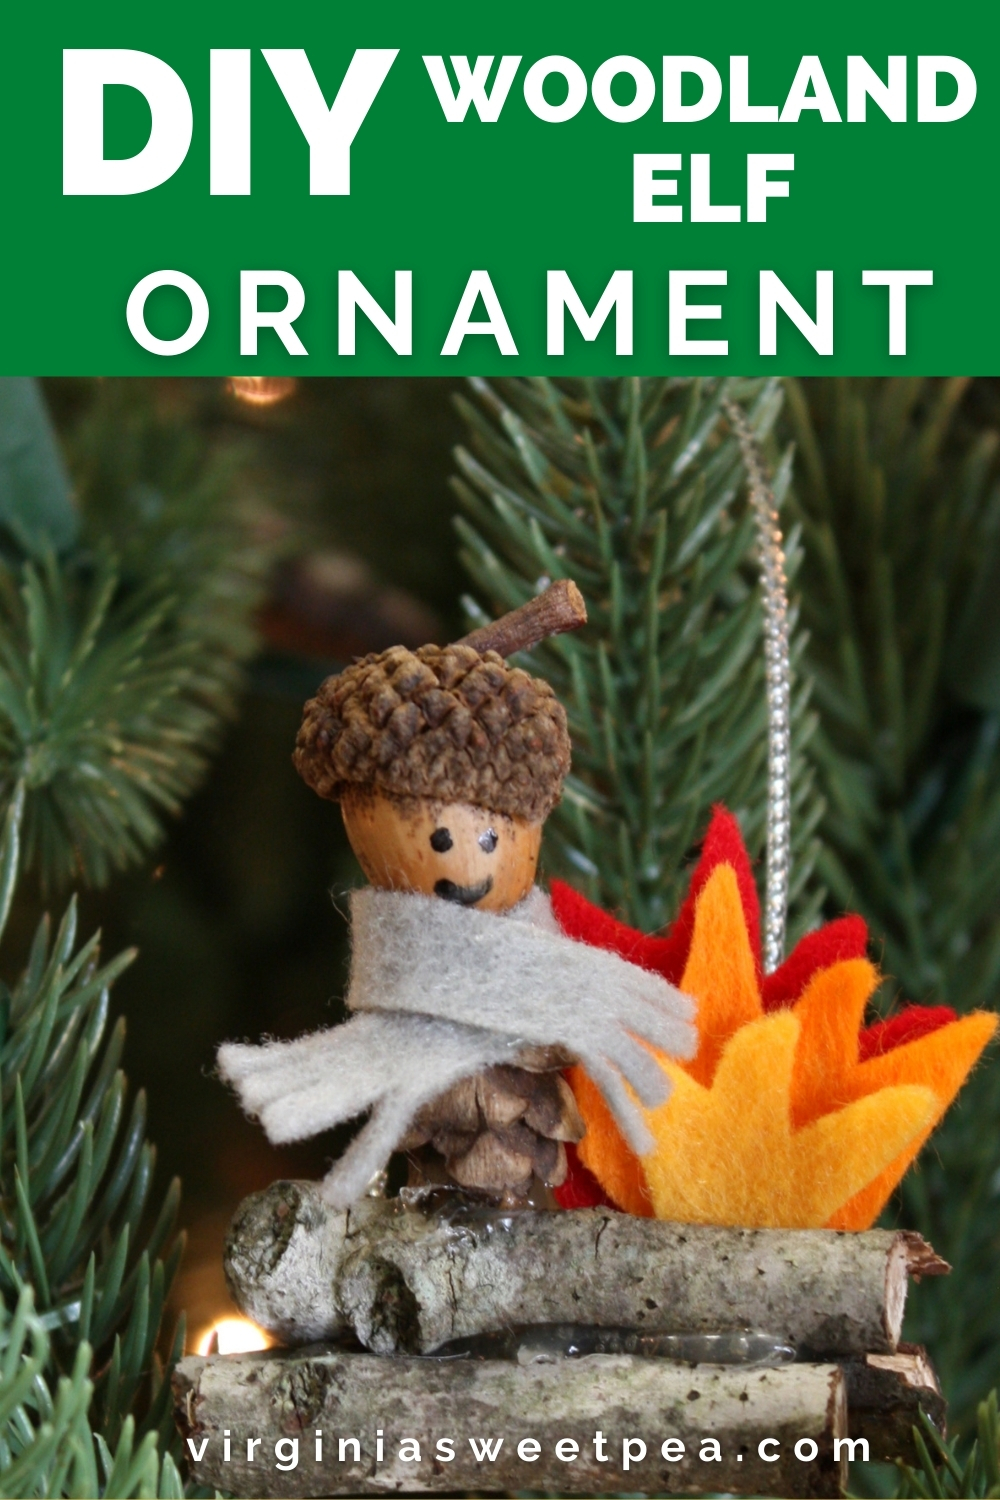 DIY Woodland Elf Christmas Ornament - Learn how to make this adorable ornament using items found in nature plus a few craft supplies. #diychristmasornament #handmadechristmasornament via @spaula